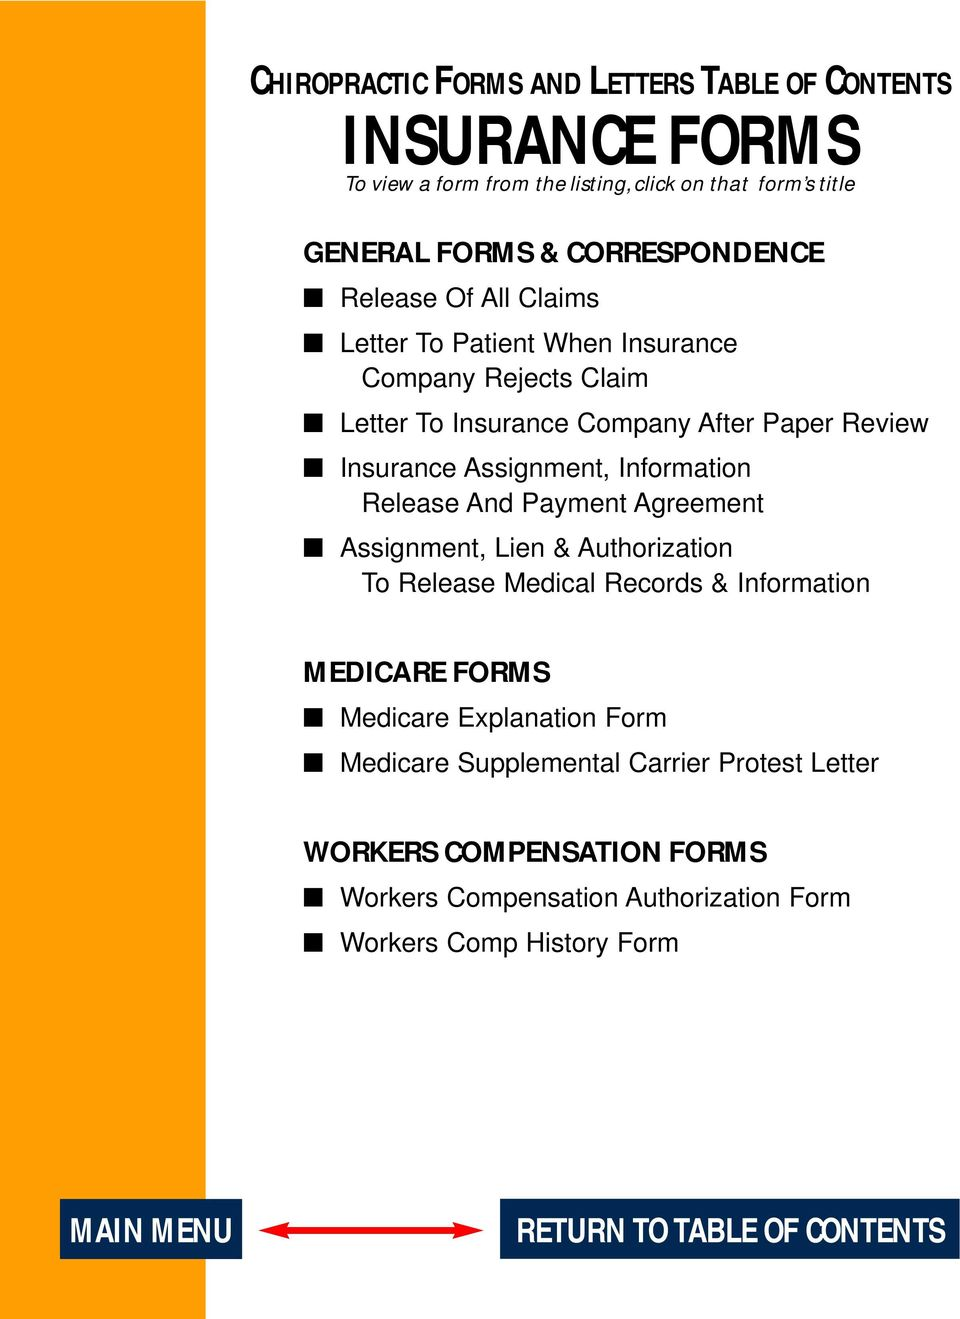 Release And Payment Agreement Assignment, Lien & Authorization To Release Medical Records & Information MEDICARE FORMS Medicare Explanation Form Medicare